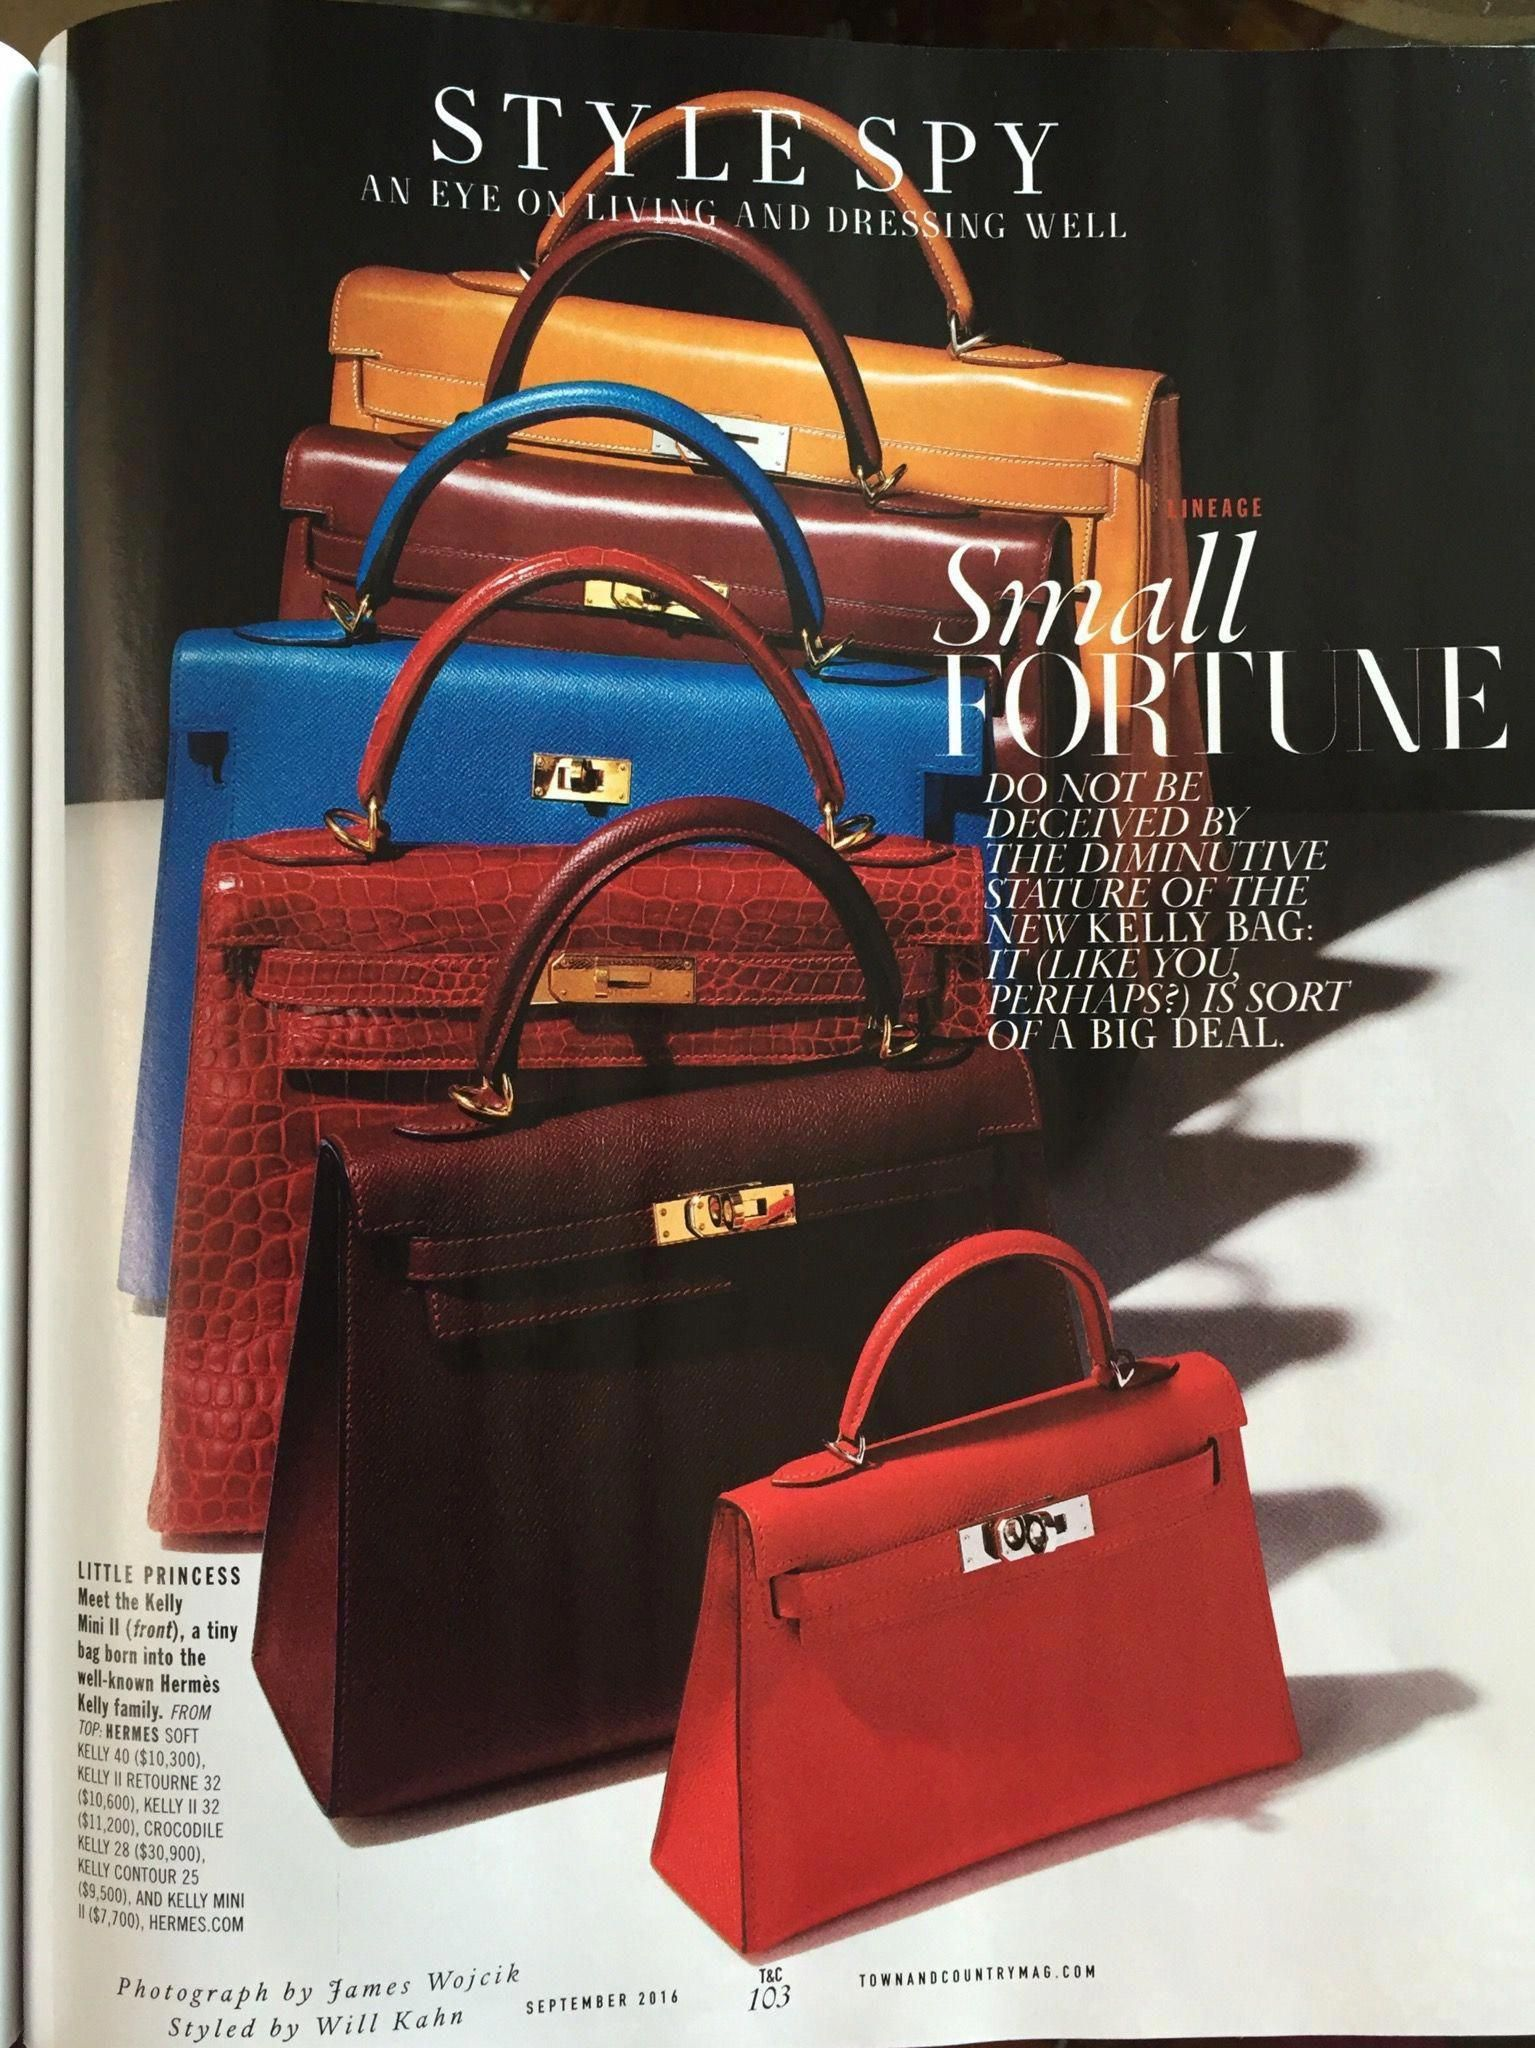 Official news of new Hermes Kelly Mini and its darling details including  price caef0f96770e9